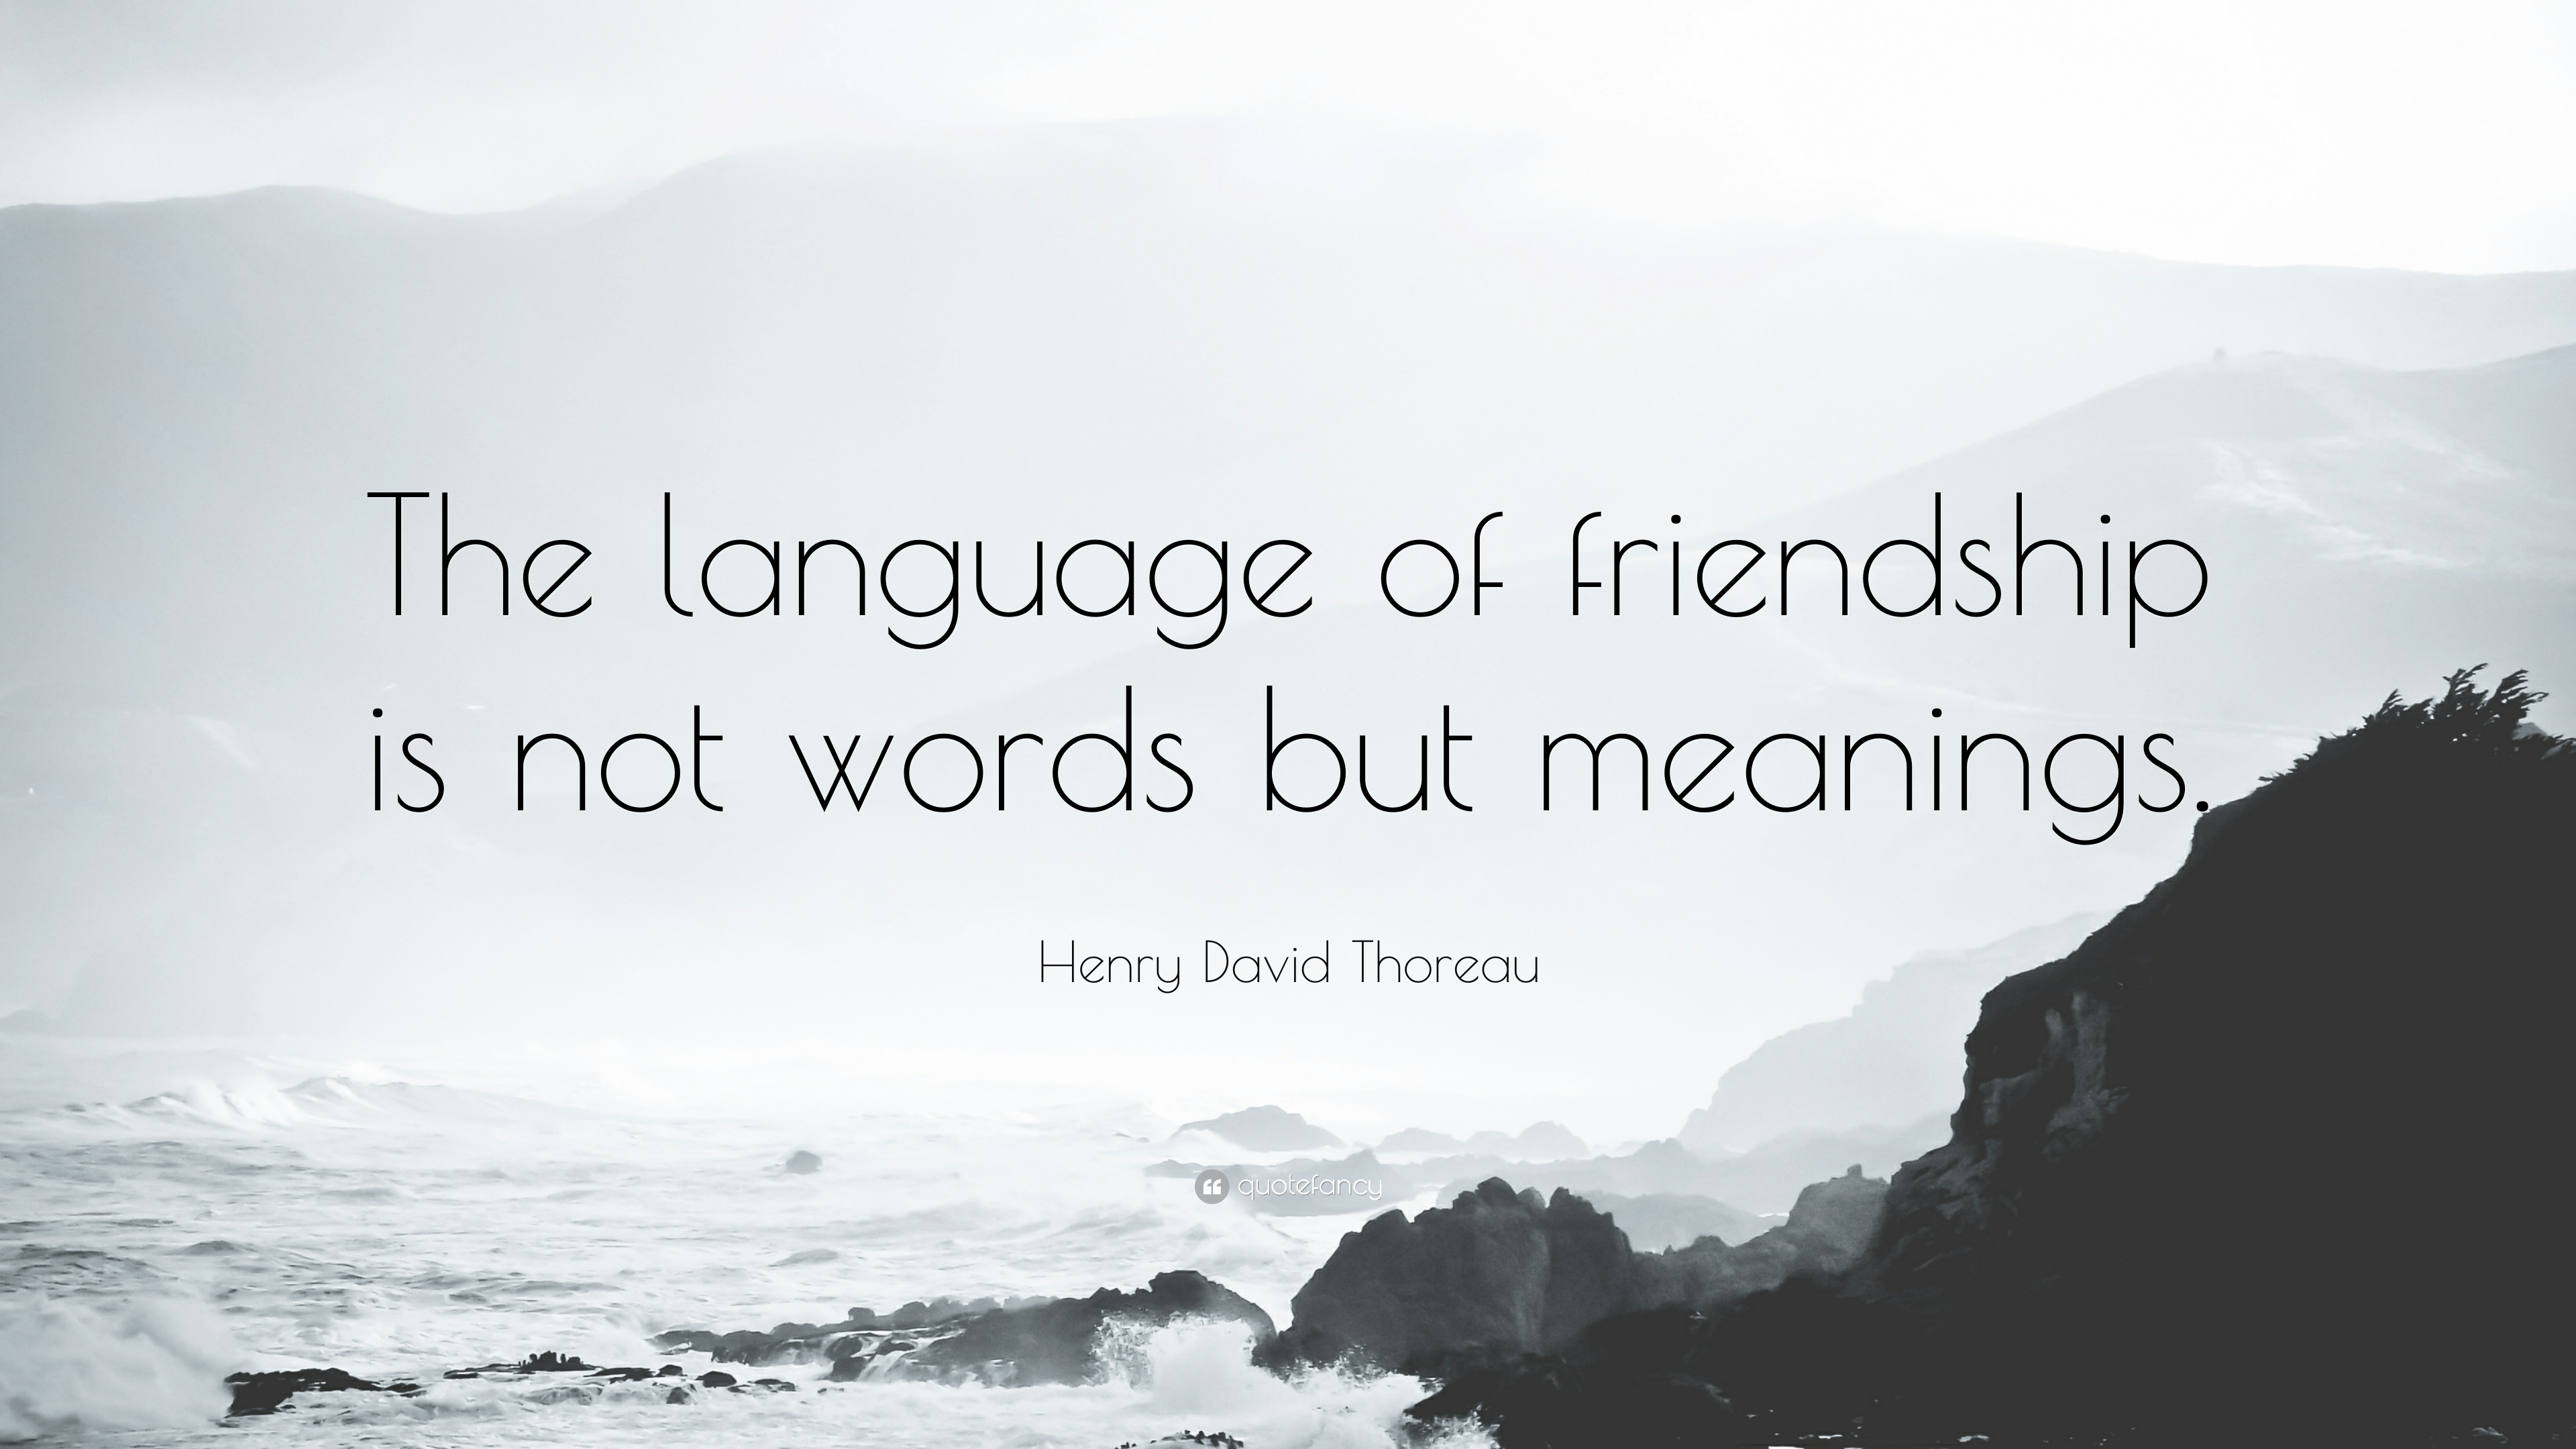 The language of friendship is not words but meanings. friendship quotes